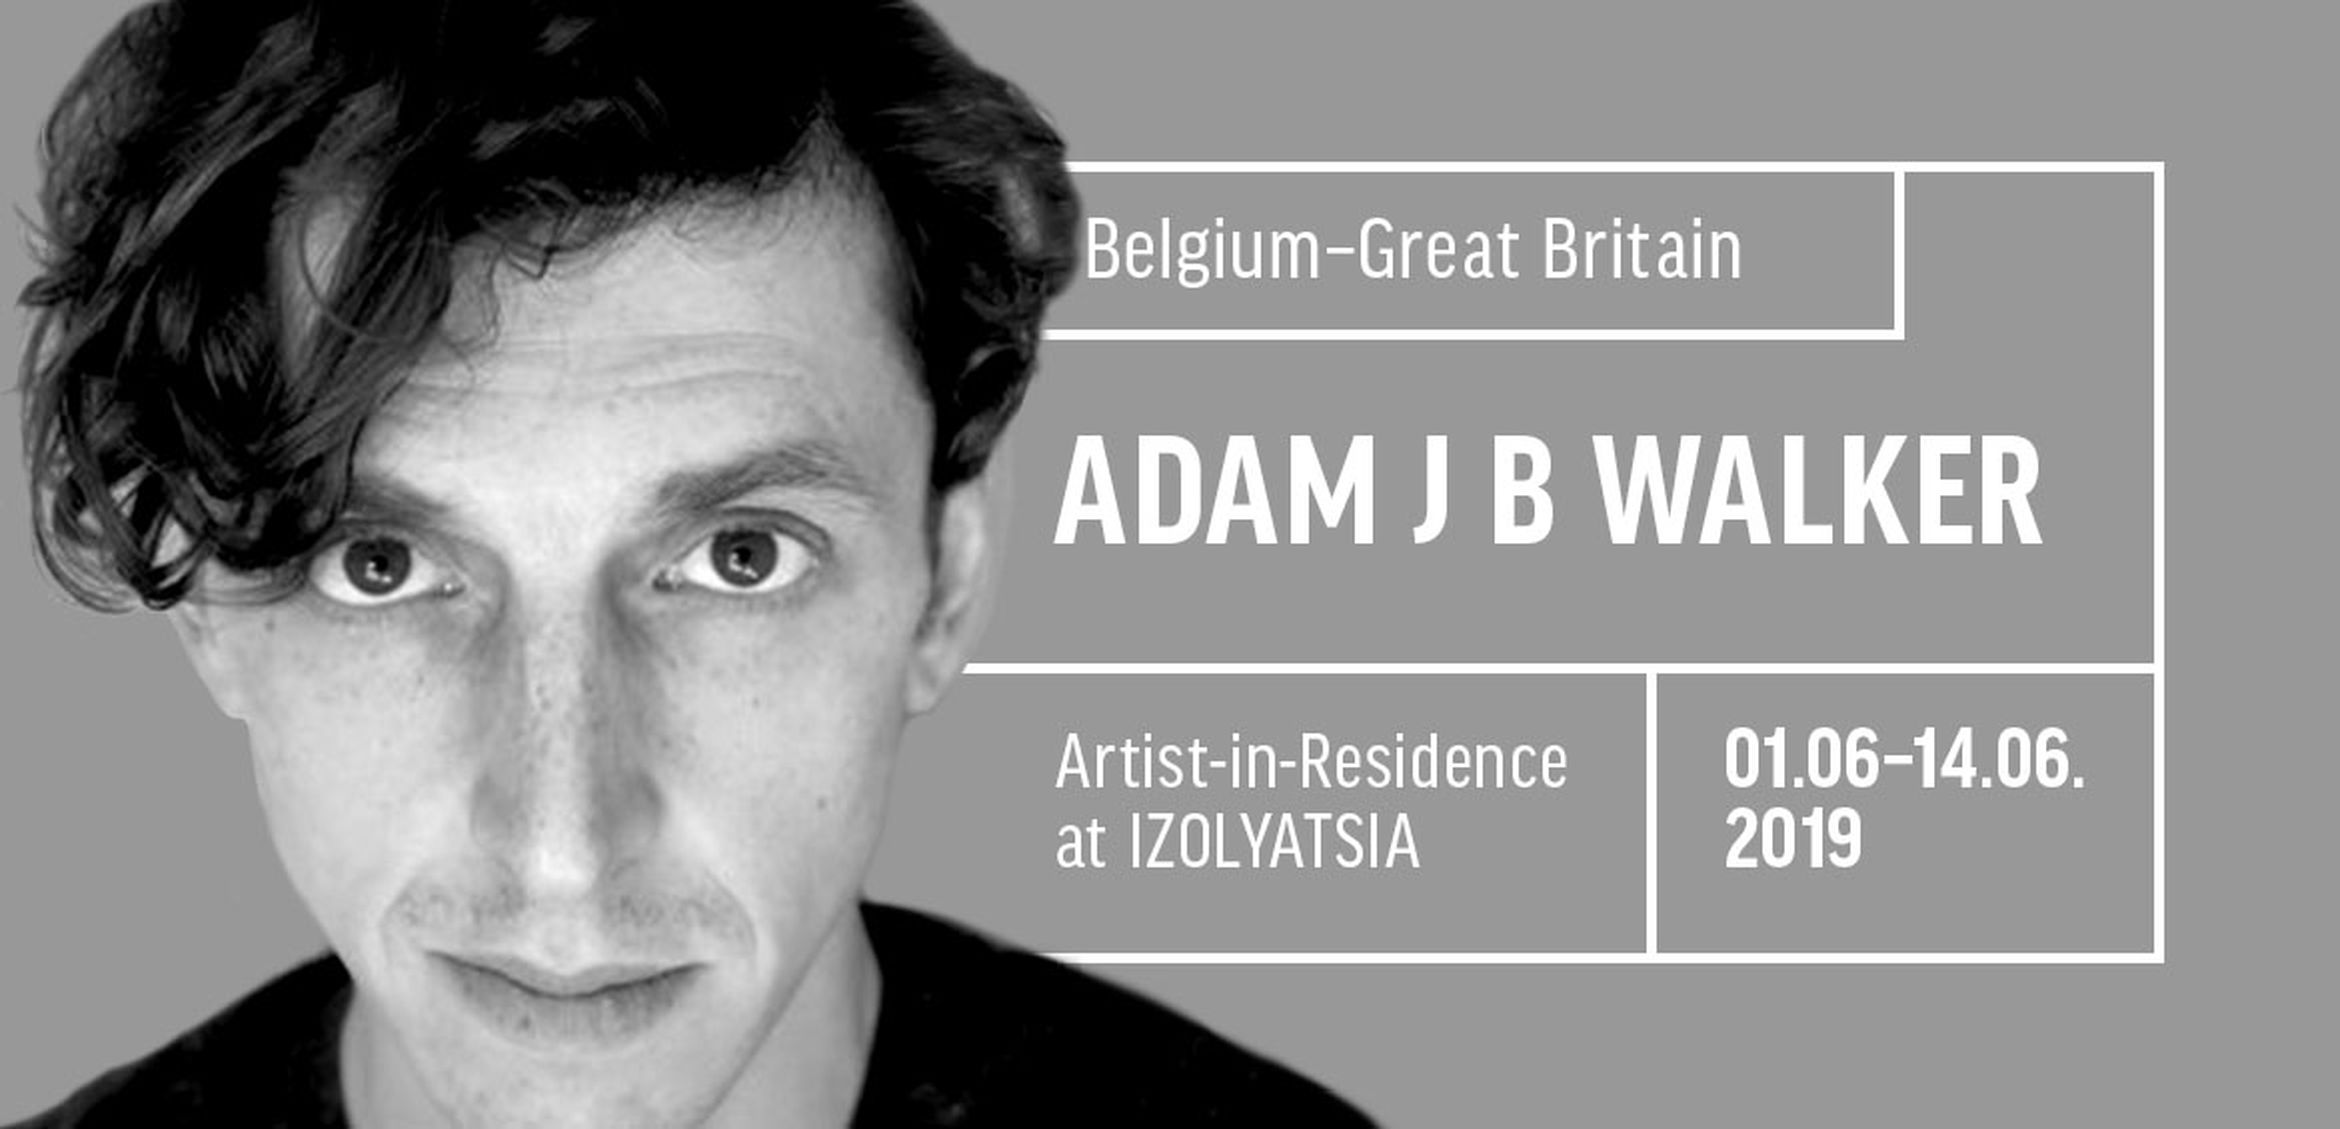 Artist Adam J B Walker in residence at IZOLYATSIA